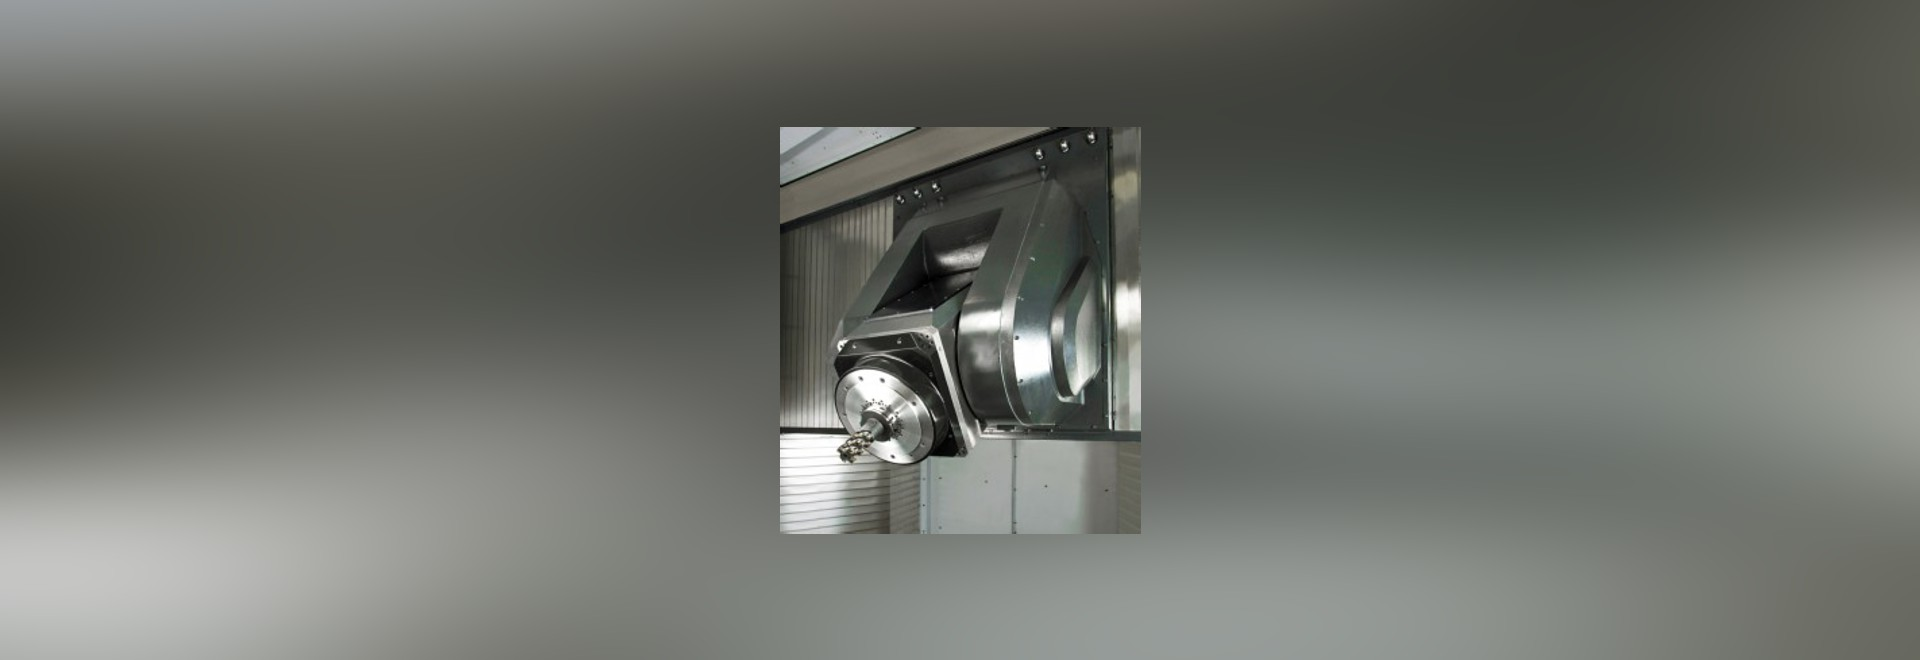 Five-axis machining centre